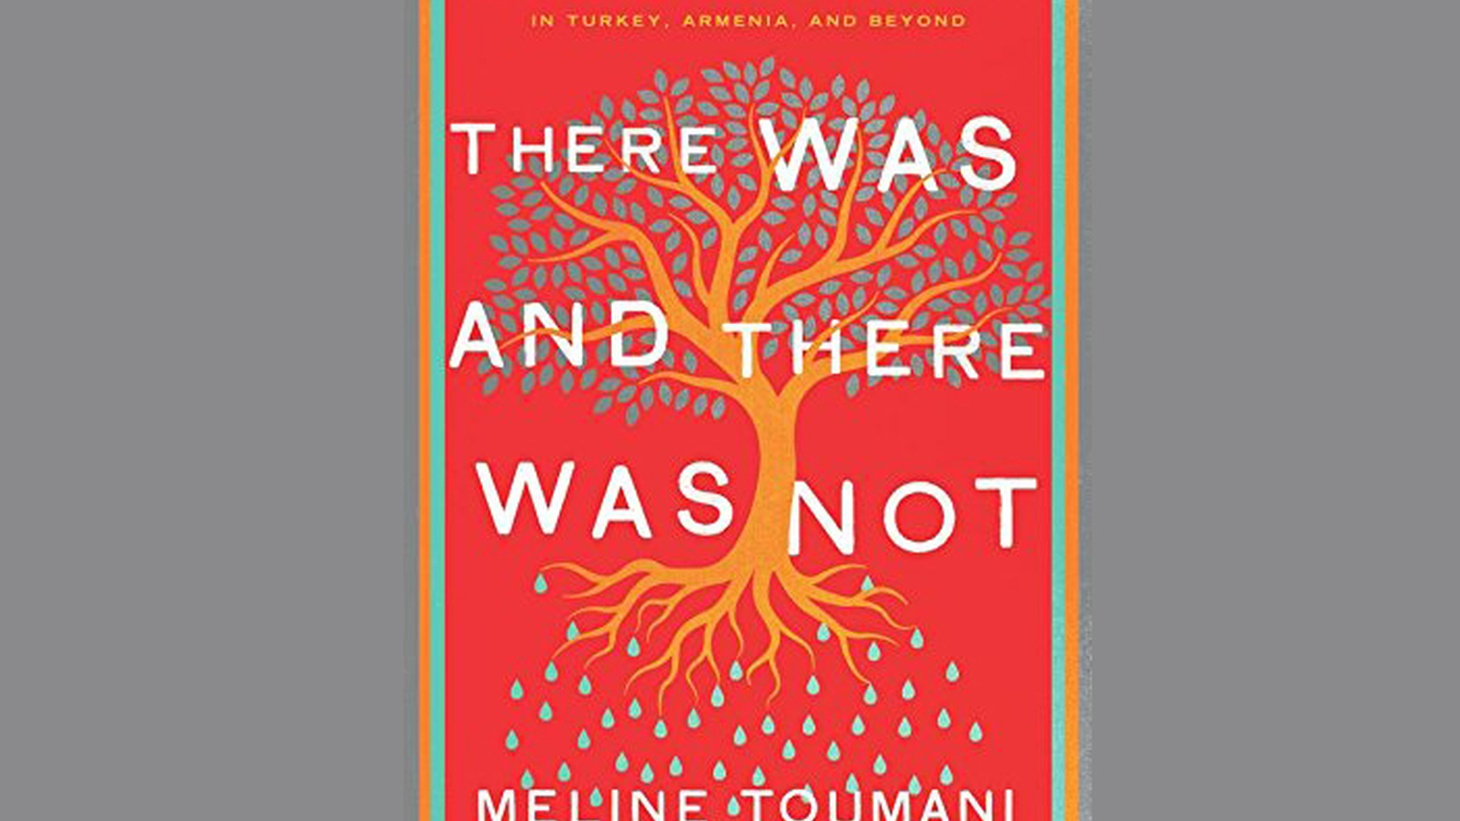 Growing up in New Jersey, Meline Toumani was taught that all Armenians should hate all things Turkish because of the ethnic cleansing that started 100 years ago today.  Then, in 2005, she quit her job with the New York Times and moved to Istanbul — an unlikely place for an Armenian-American writer.  She wrote a book that was controversial even…